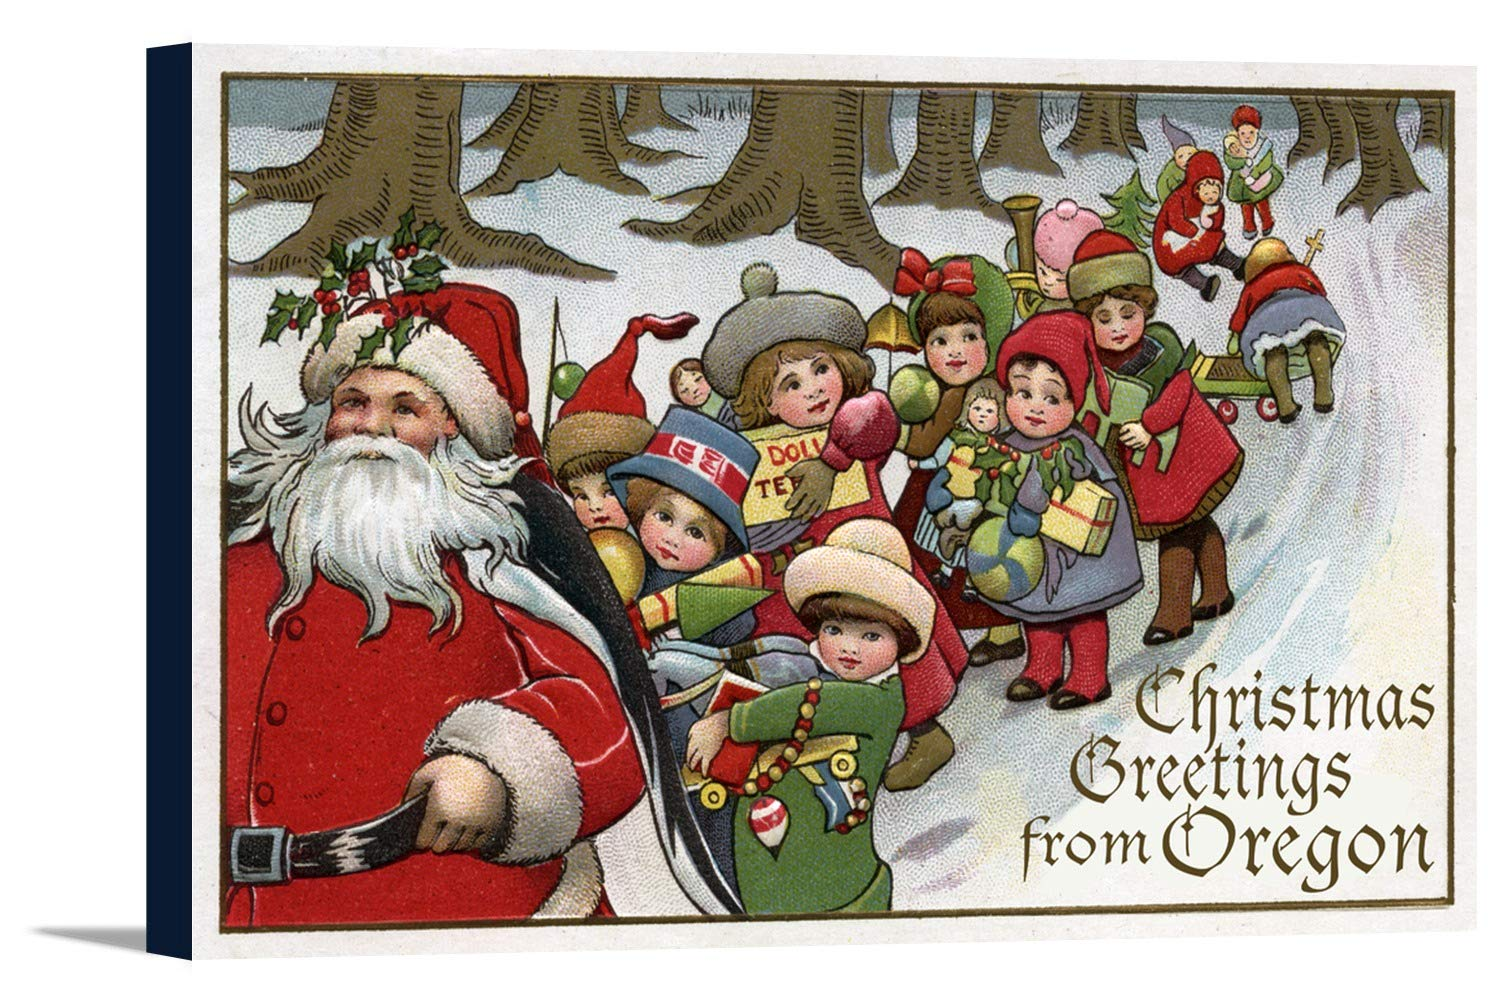 Christmas Greetings From Oregon – サンタとそり 36 x 24 Gallery Canvas LANT-3P-SC-32399-24x36 B0184AYB02  36 x 24 Gallery Canvas